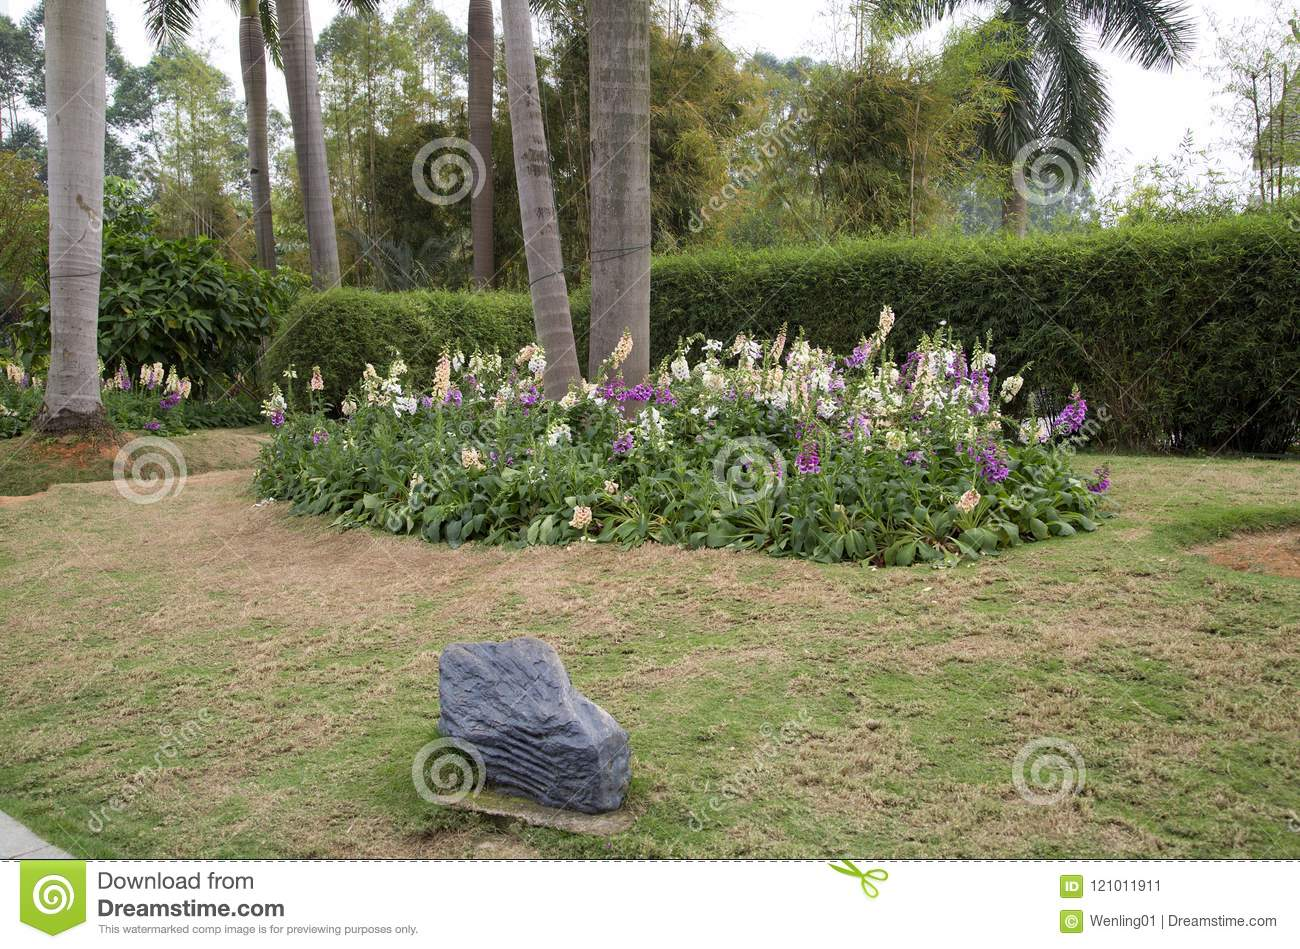 Flower Bed Around Trees Design In The Flower Park Stock Image Image Of Bush Bloom 121011911